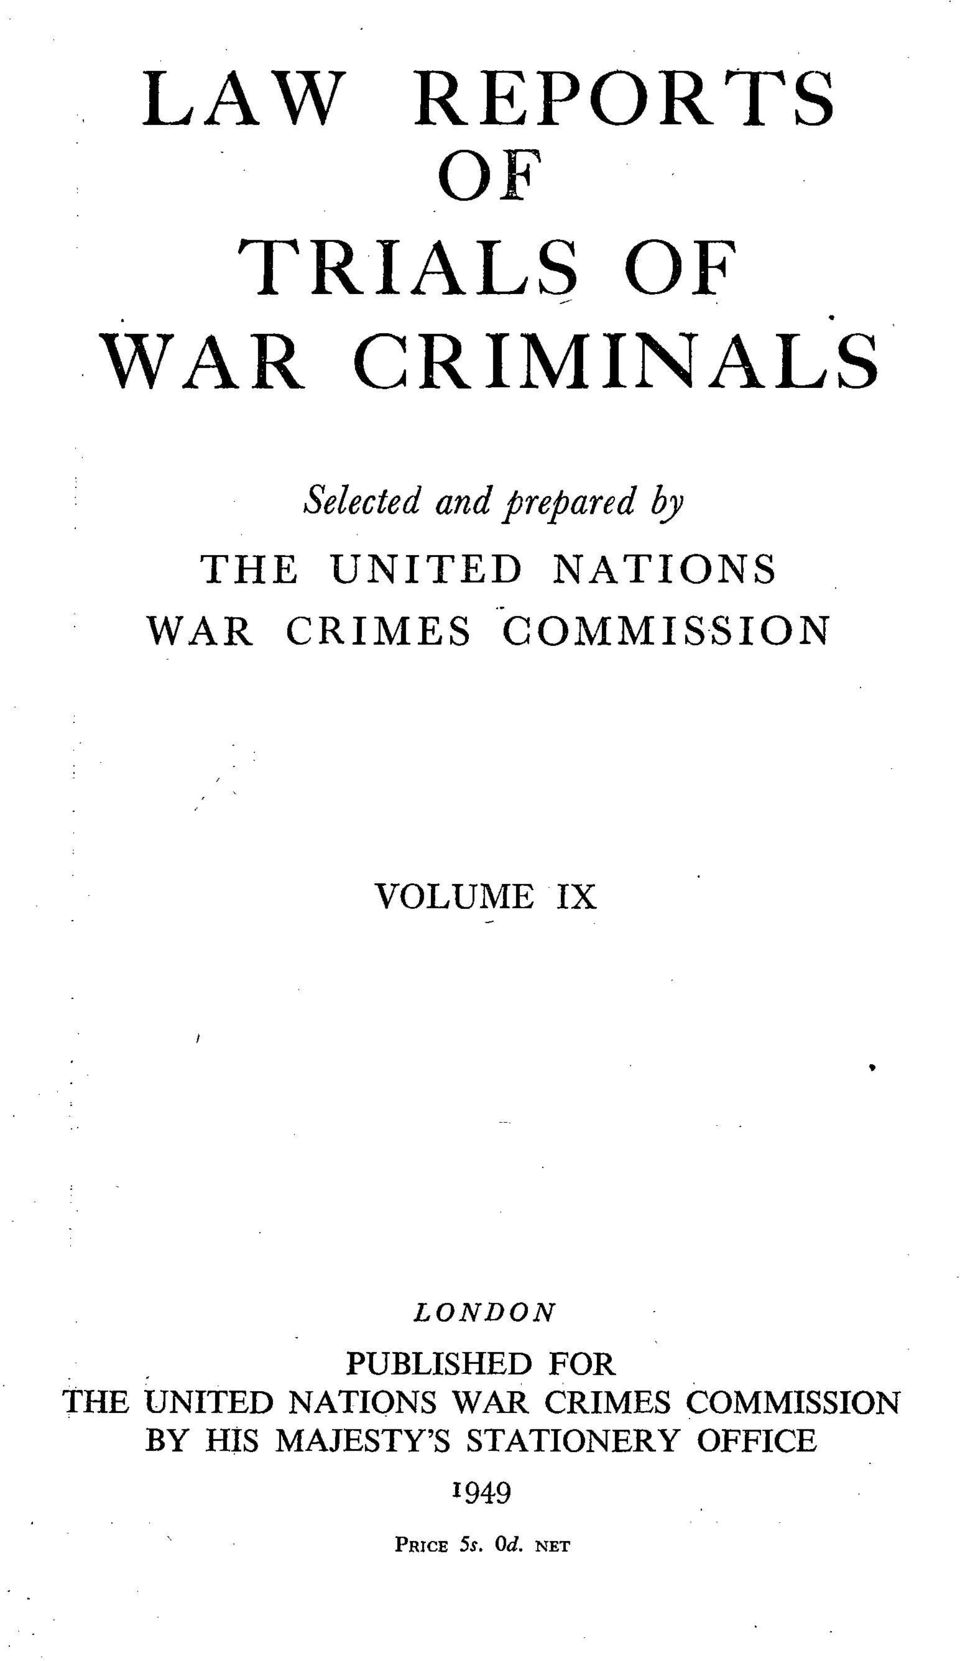 WAR CRIMES COMMISSION VOLUME IX LONDON.